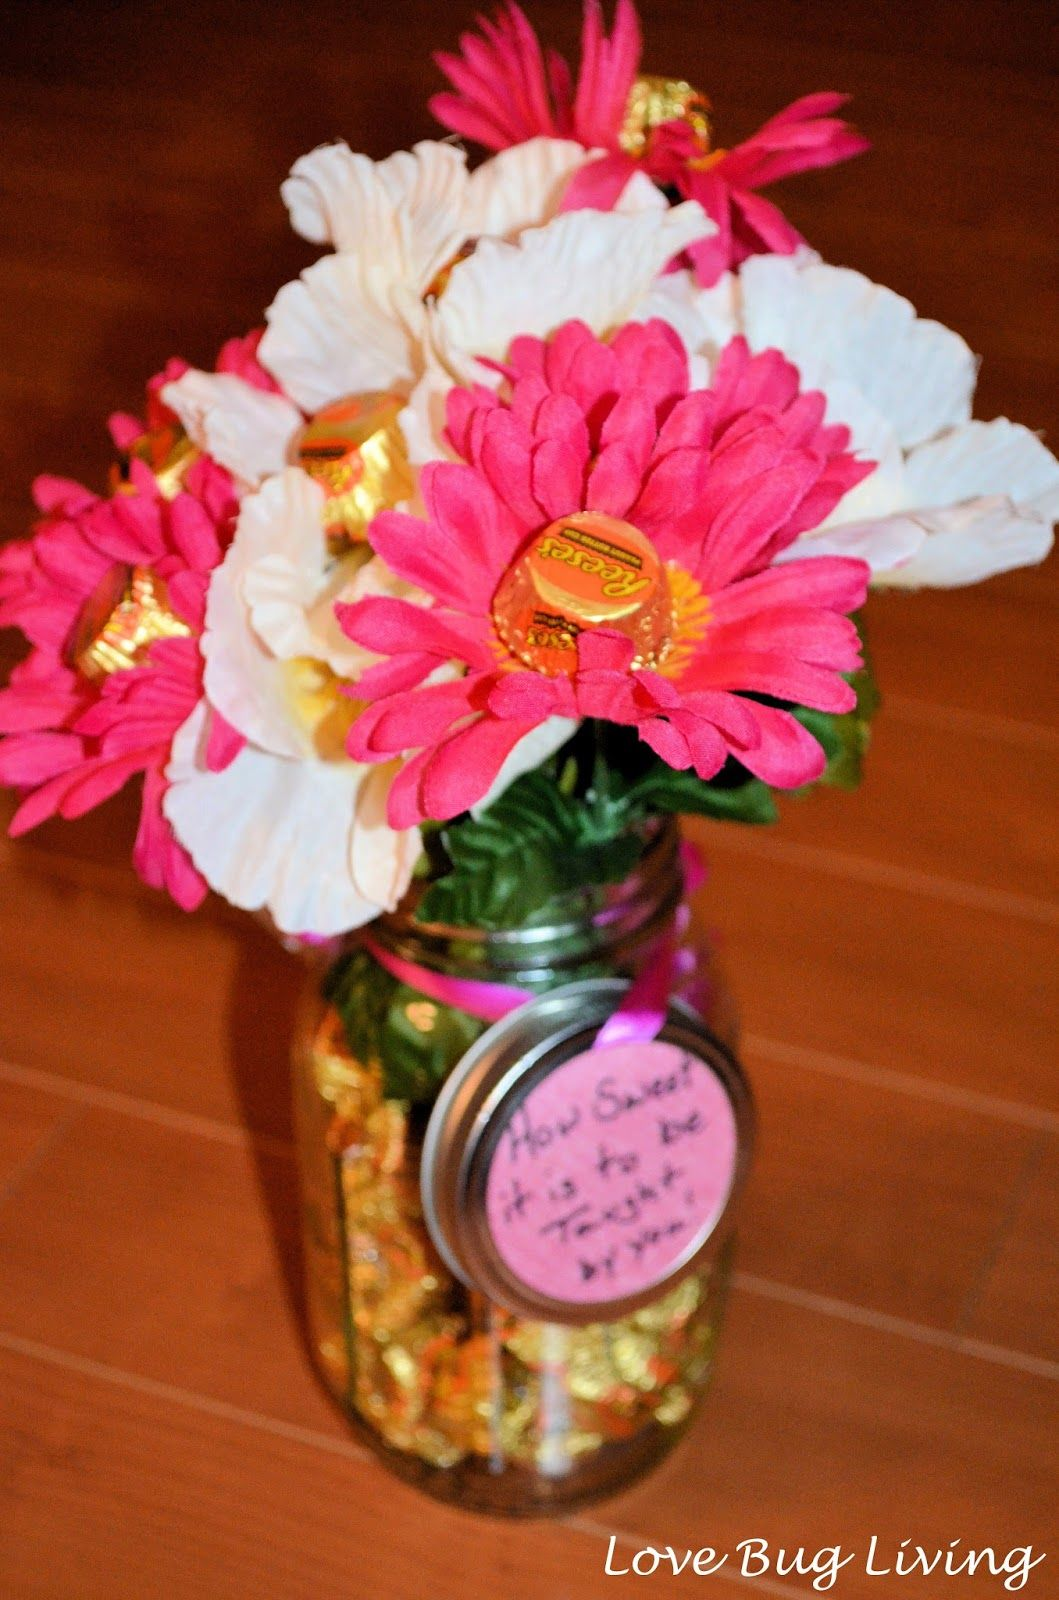 Love bug living candy flower bouquet mason jar gift for teacher love bug living candy flower bouquet mason jar gift for teacher appreciation day or mothers izmirmasajfo Choice Image